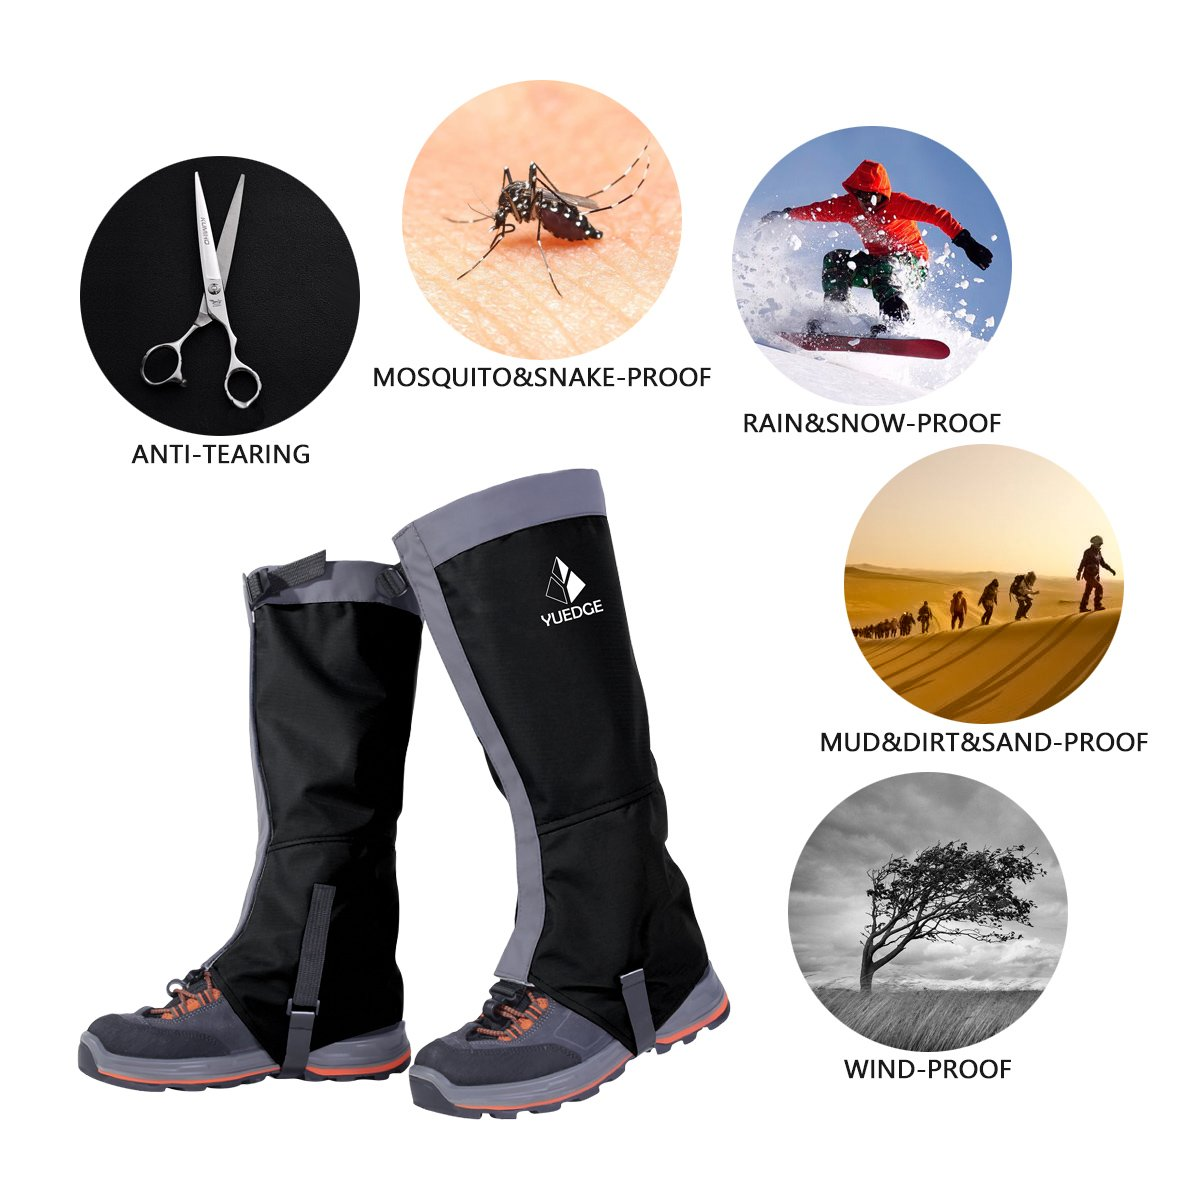 YUEDGE Waterproof Snow Leg Gaiters Lightweight Waterproof Breathable High Gaiters For Outdoor Walking Hiking Fishing Research Hunting Trimming Grass(Black&Gray)